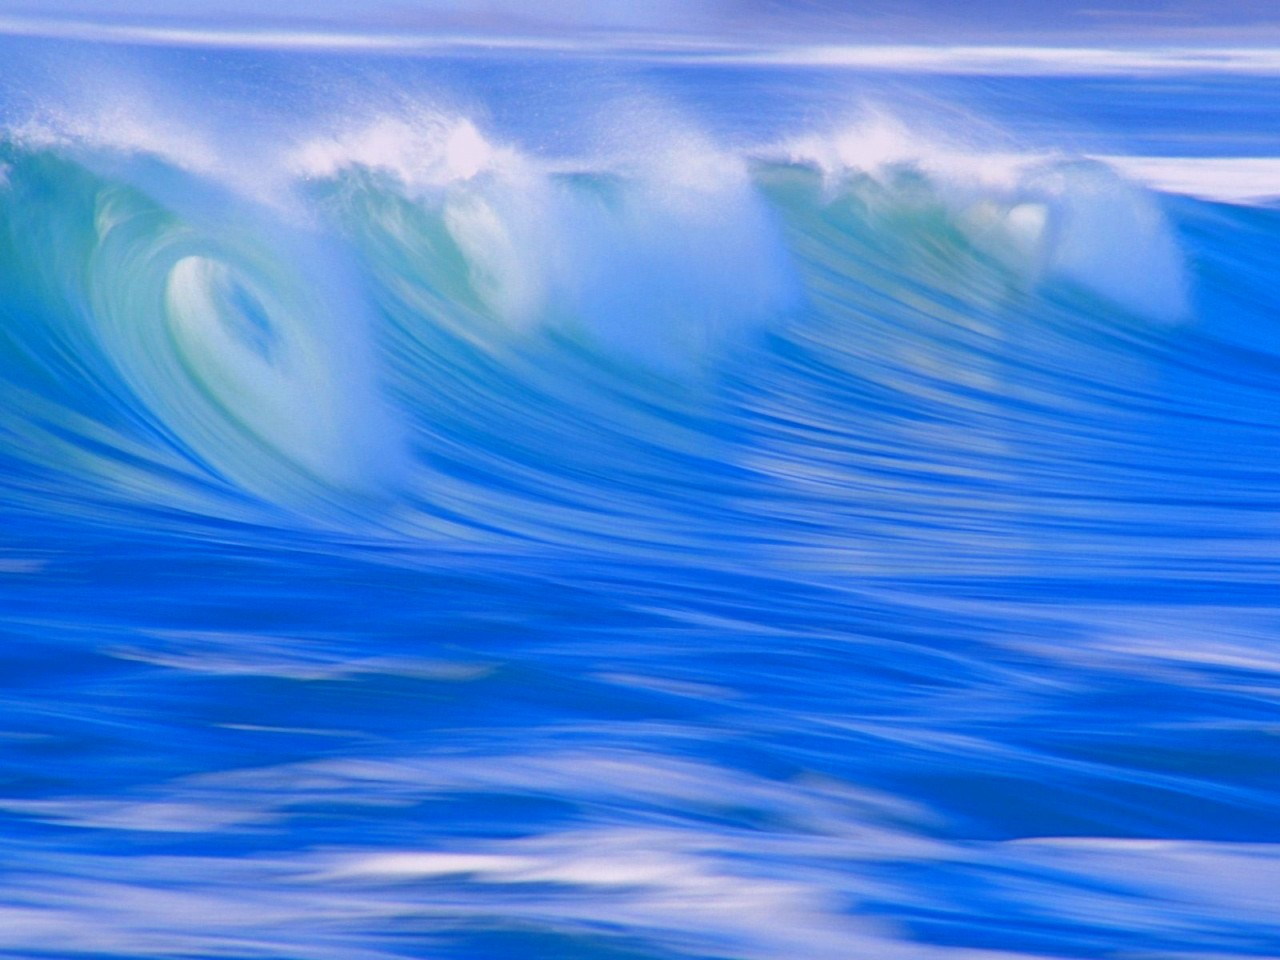 blue wave wallpapers, pictures, images